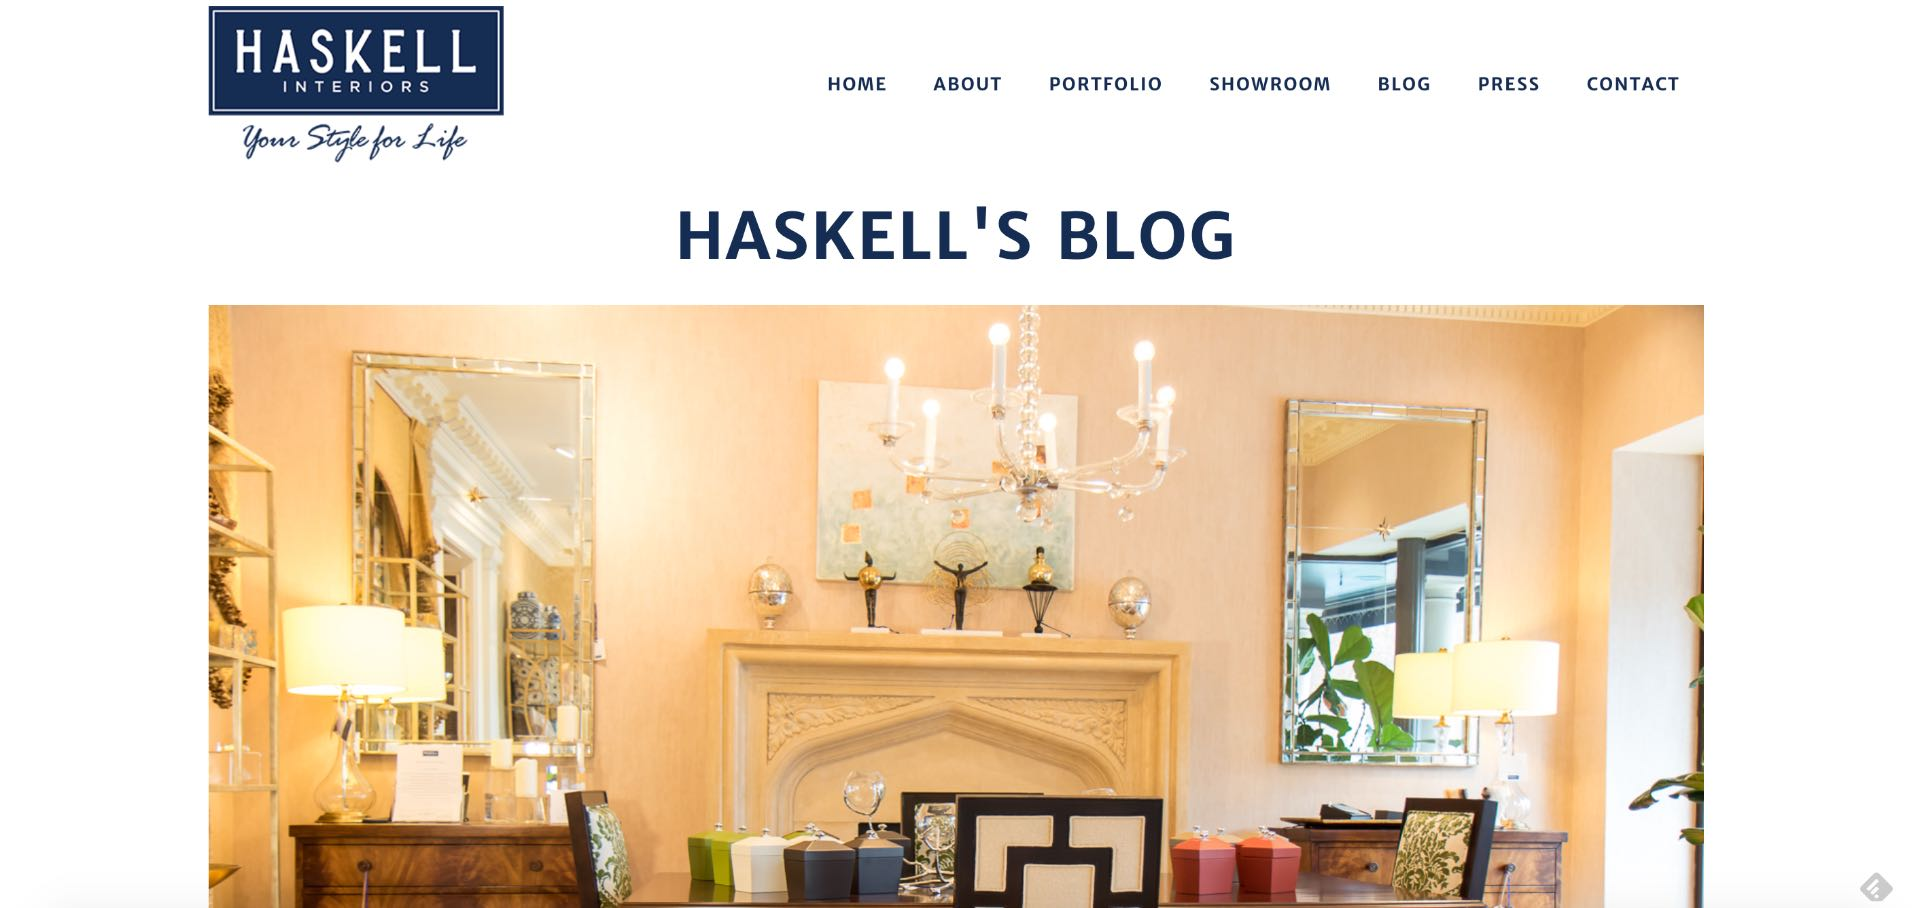 The interior designer's blog helps educate potential clients